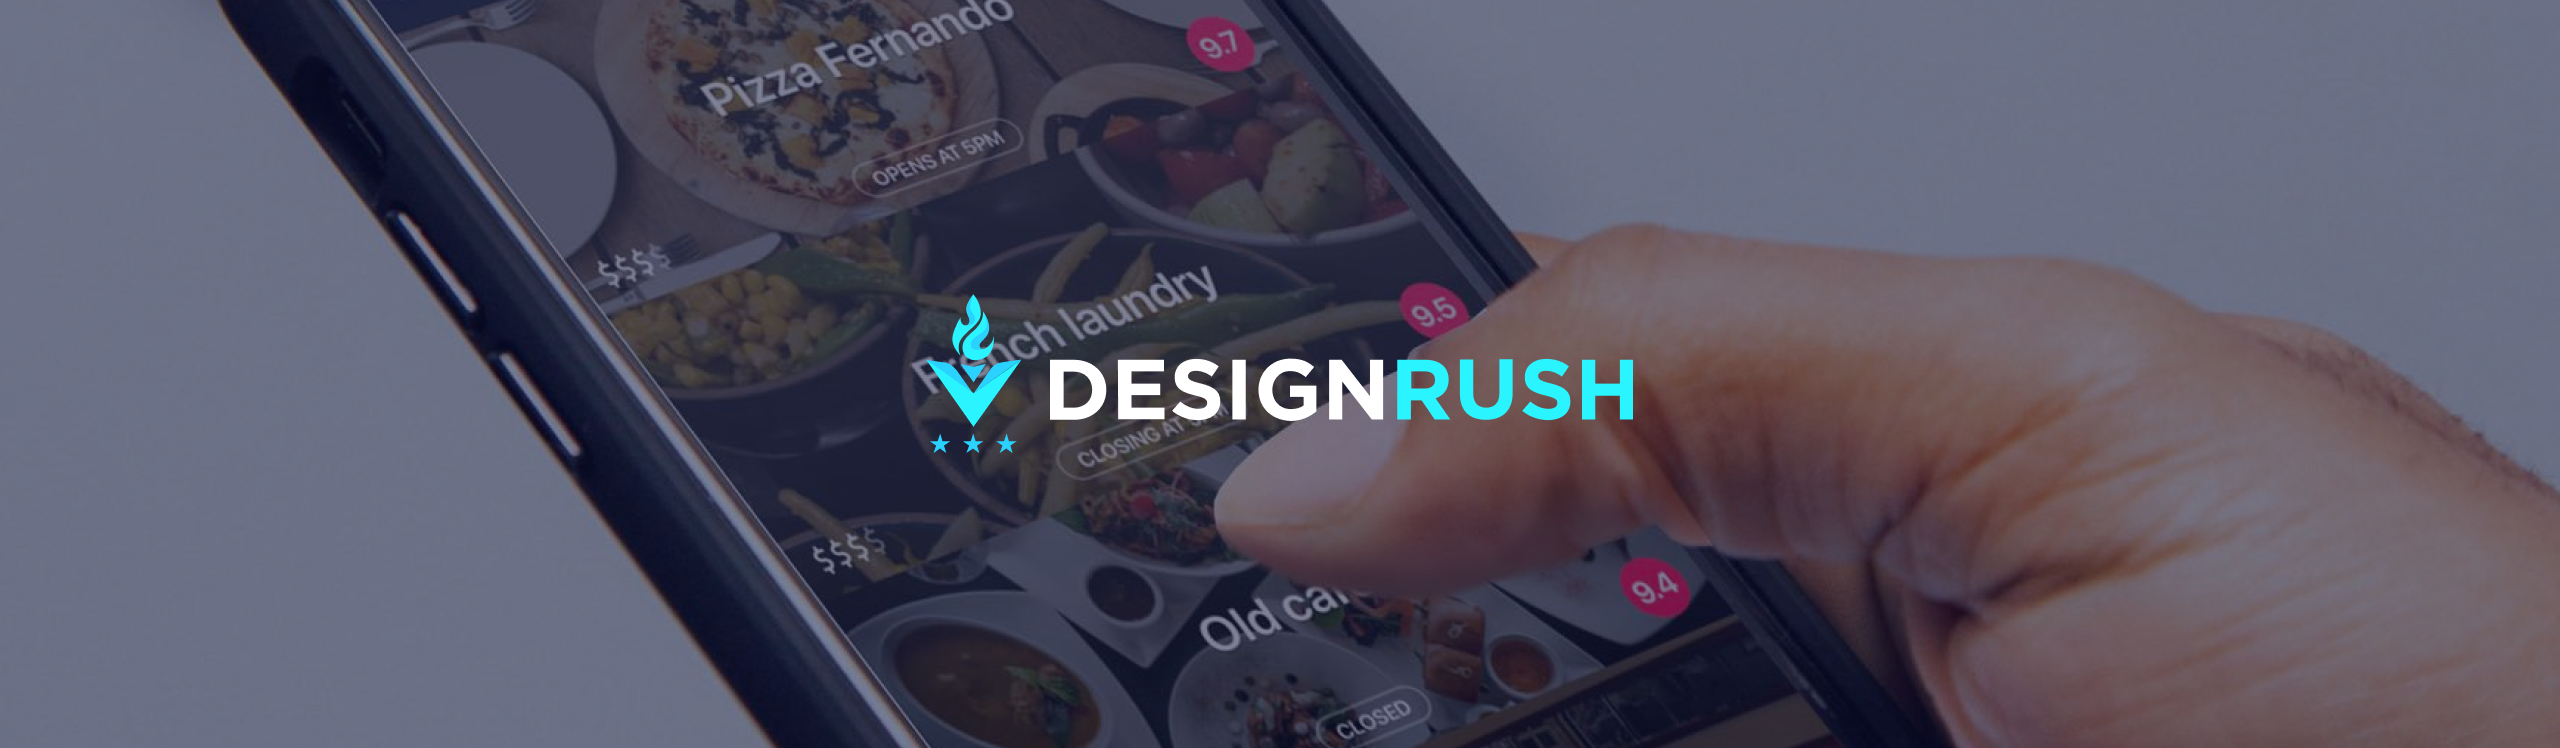 Diffco has been recognized among the 20 Top Mobile App Developers In California in 2021 by DesignRush Marketplace.